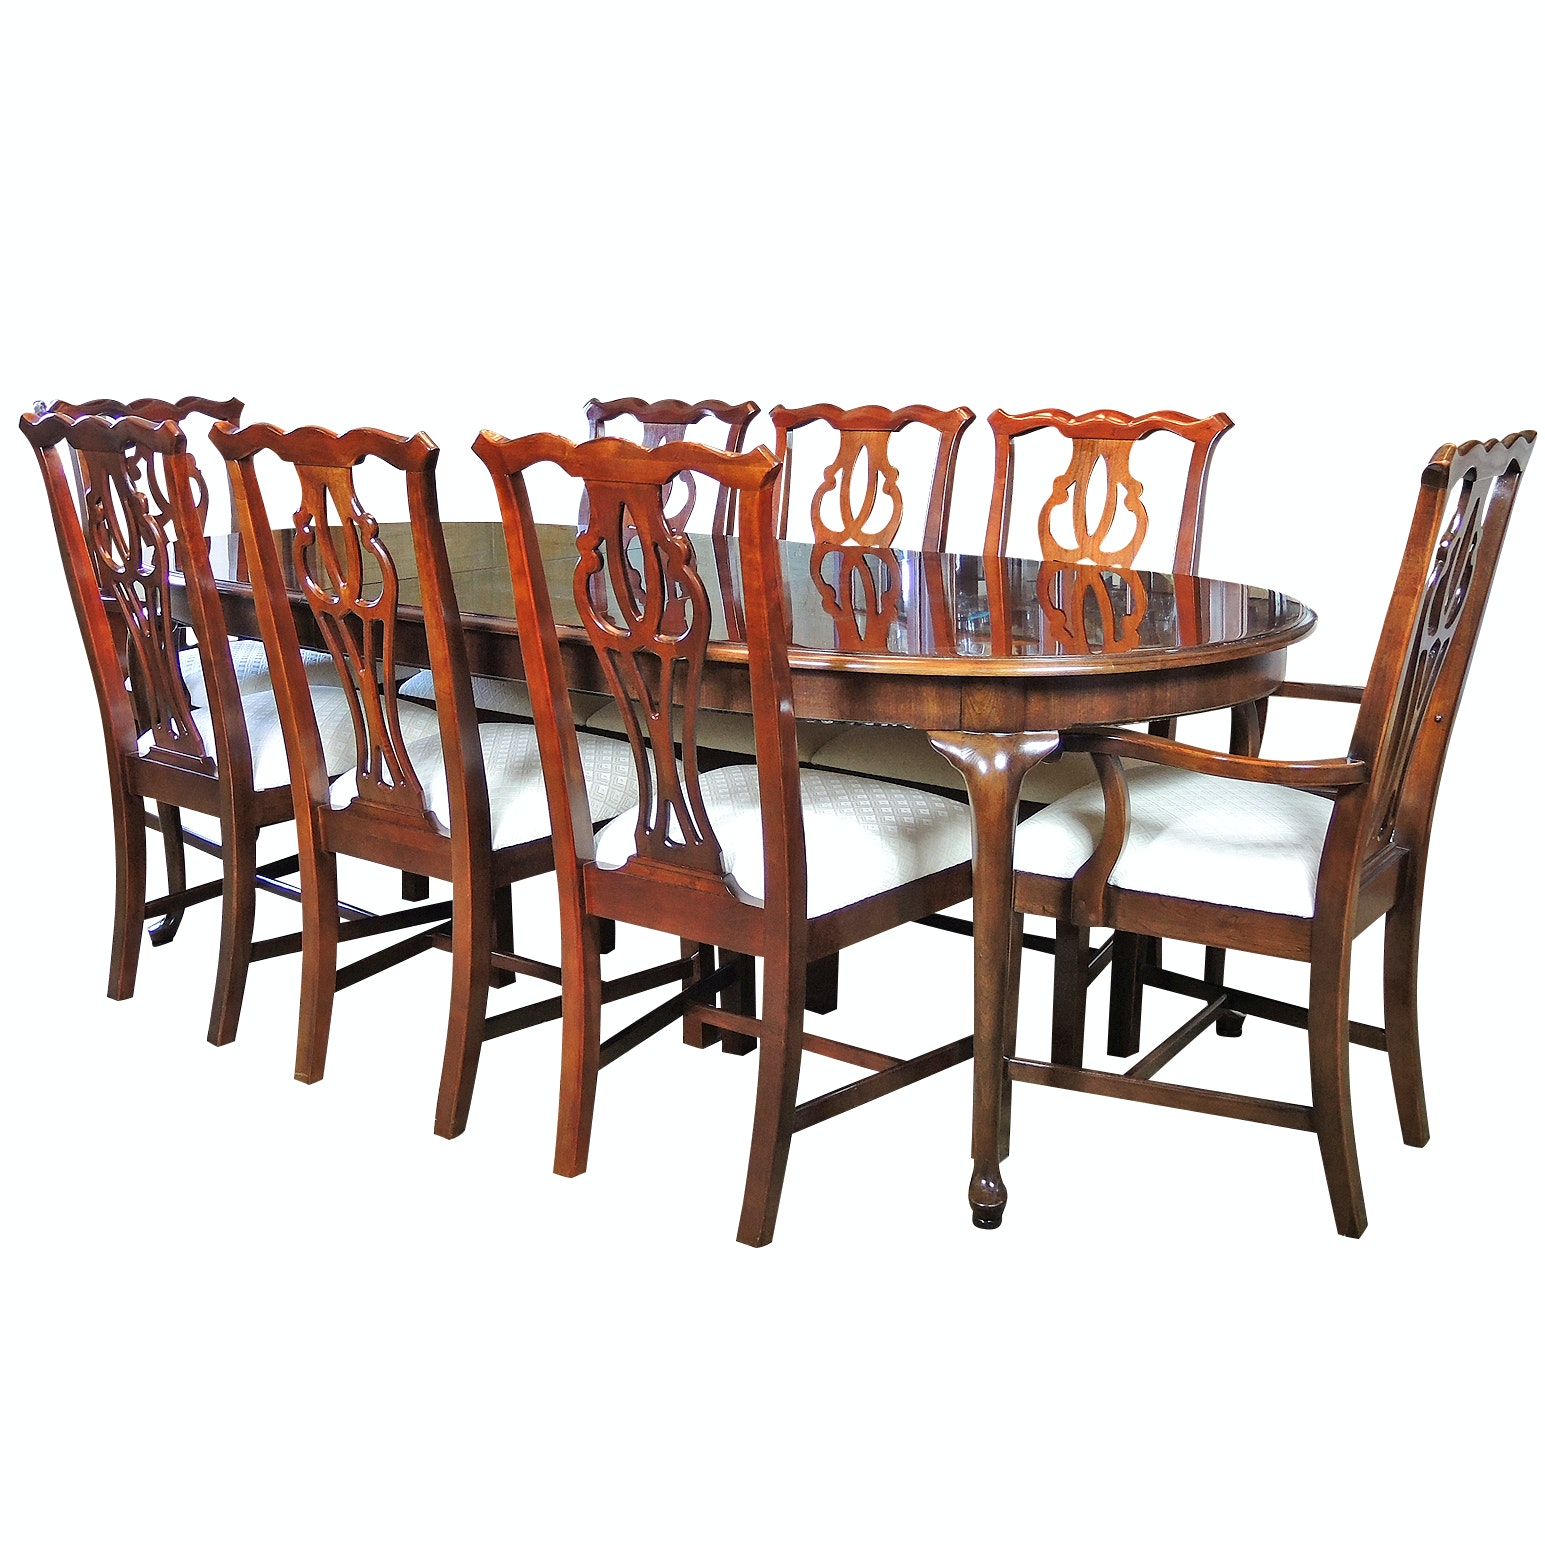 Thomasville Oval Dining Table and Chairs Set